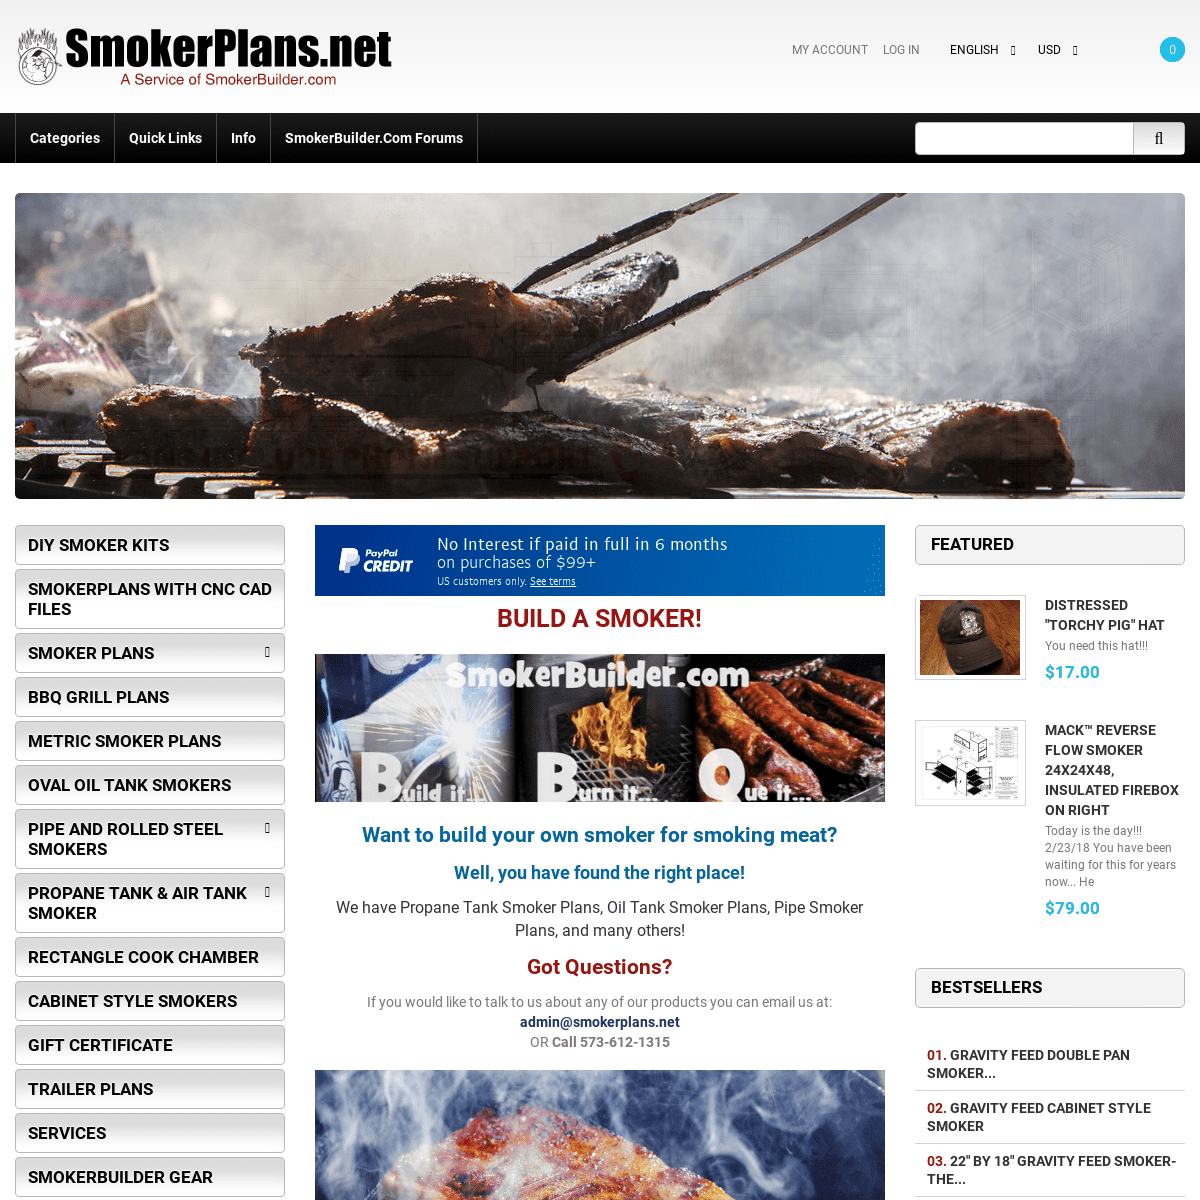 ArchiveBay.com - smokerplans.net - Smoker Plans, Build a Smoker